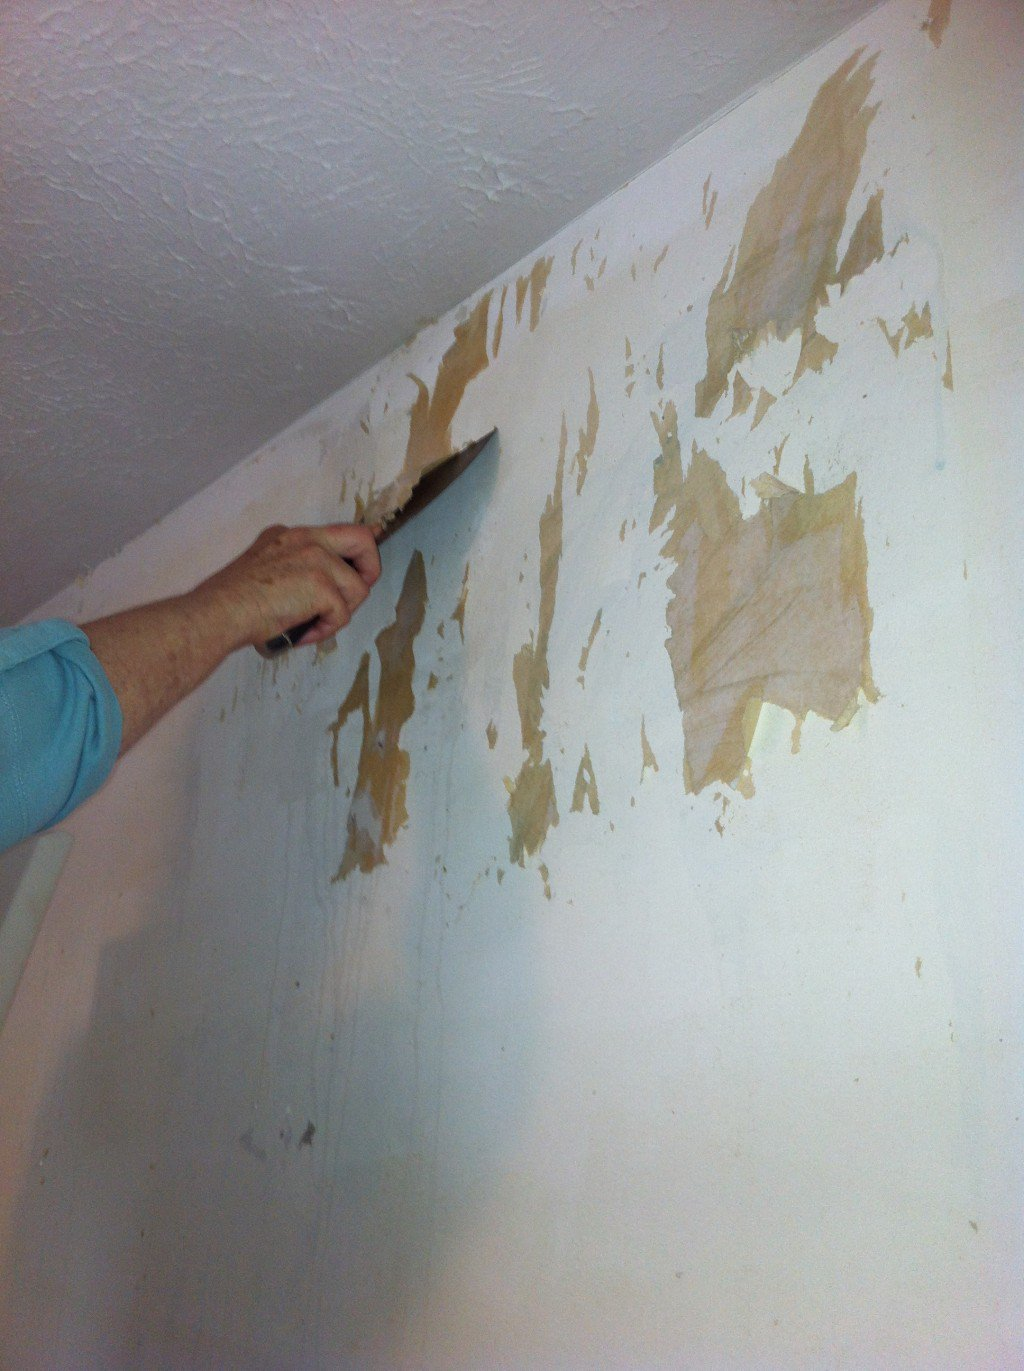 Free Download How To Remove Wallpaper From Plaster Walls